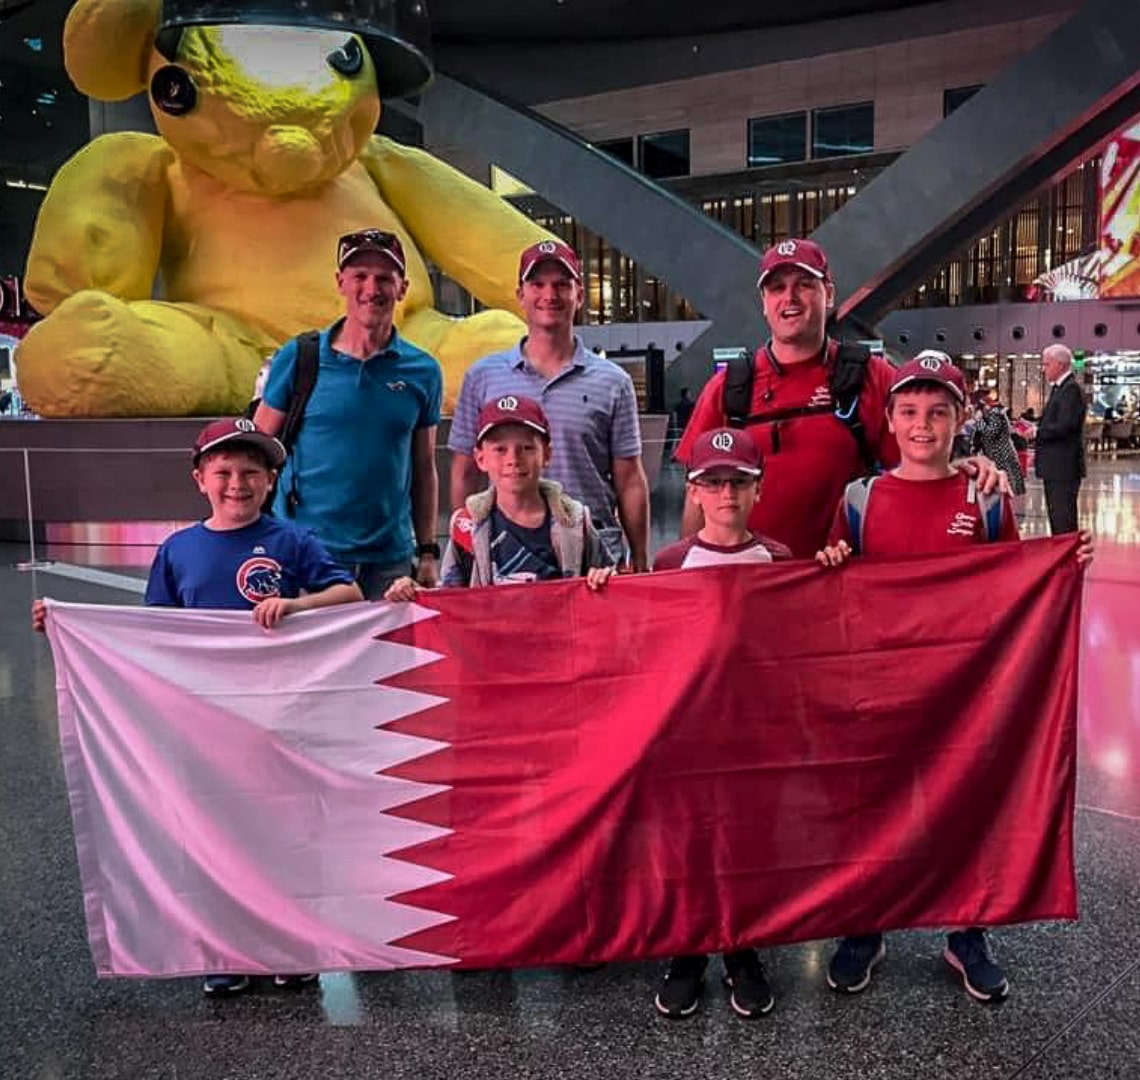 Baseball Mom - Thing 1 (far left) with 3 of his teammates clutching the Qatar flag. 3 dads are stood behind them and they're all stood in front of the iconic yellow teddy bear in Hamad International Airport